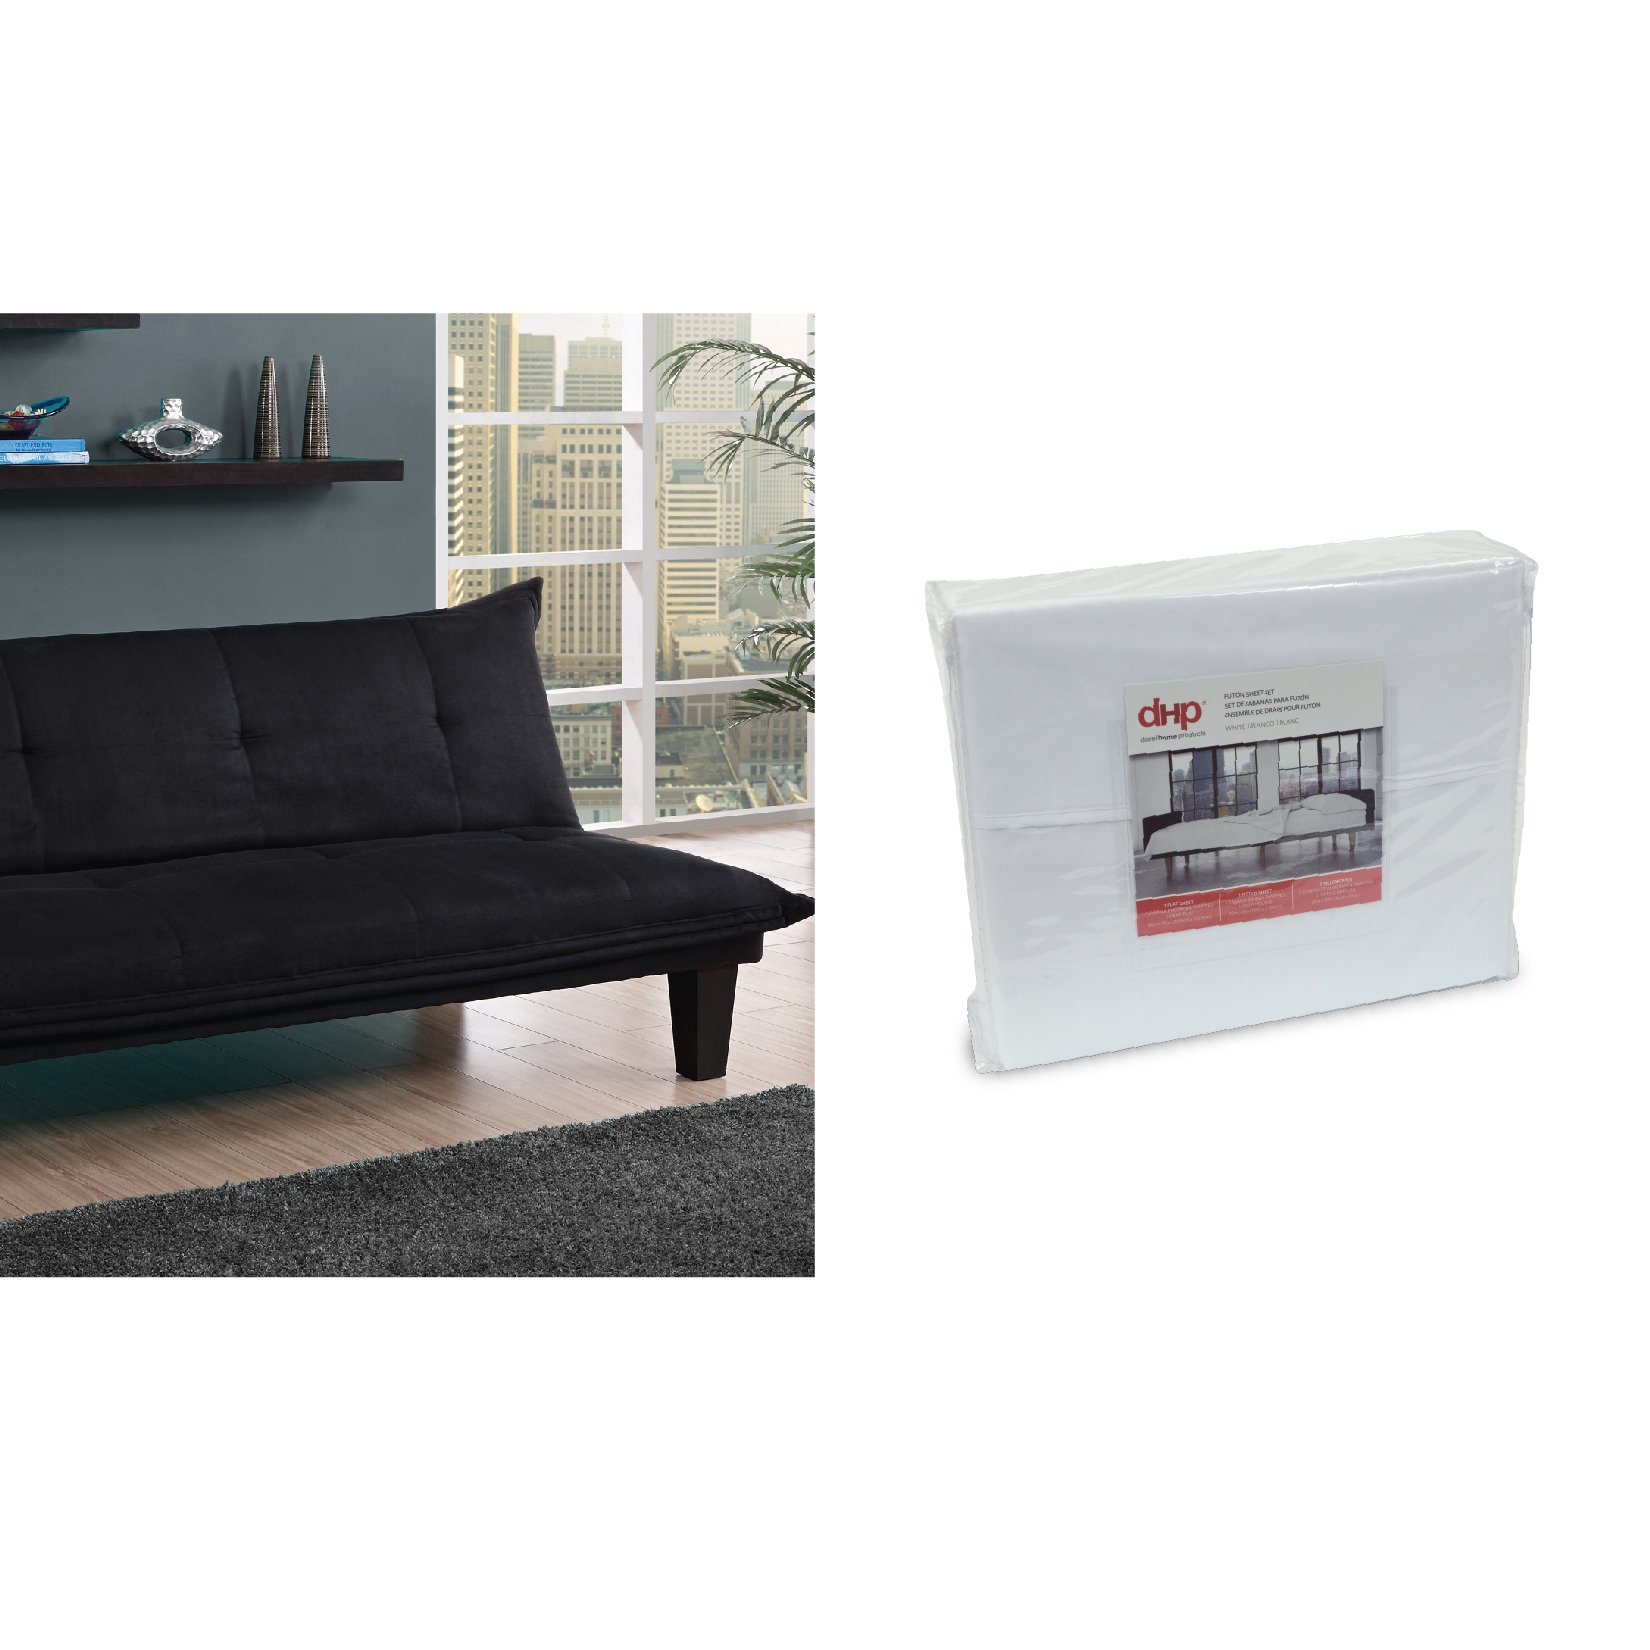 DHP Lodge Convertible Futon Couch Bed, Black and Futon Sheet Set, White by DHP